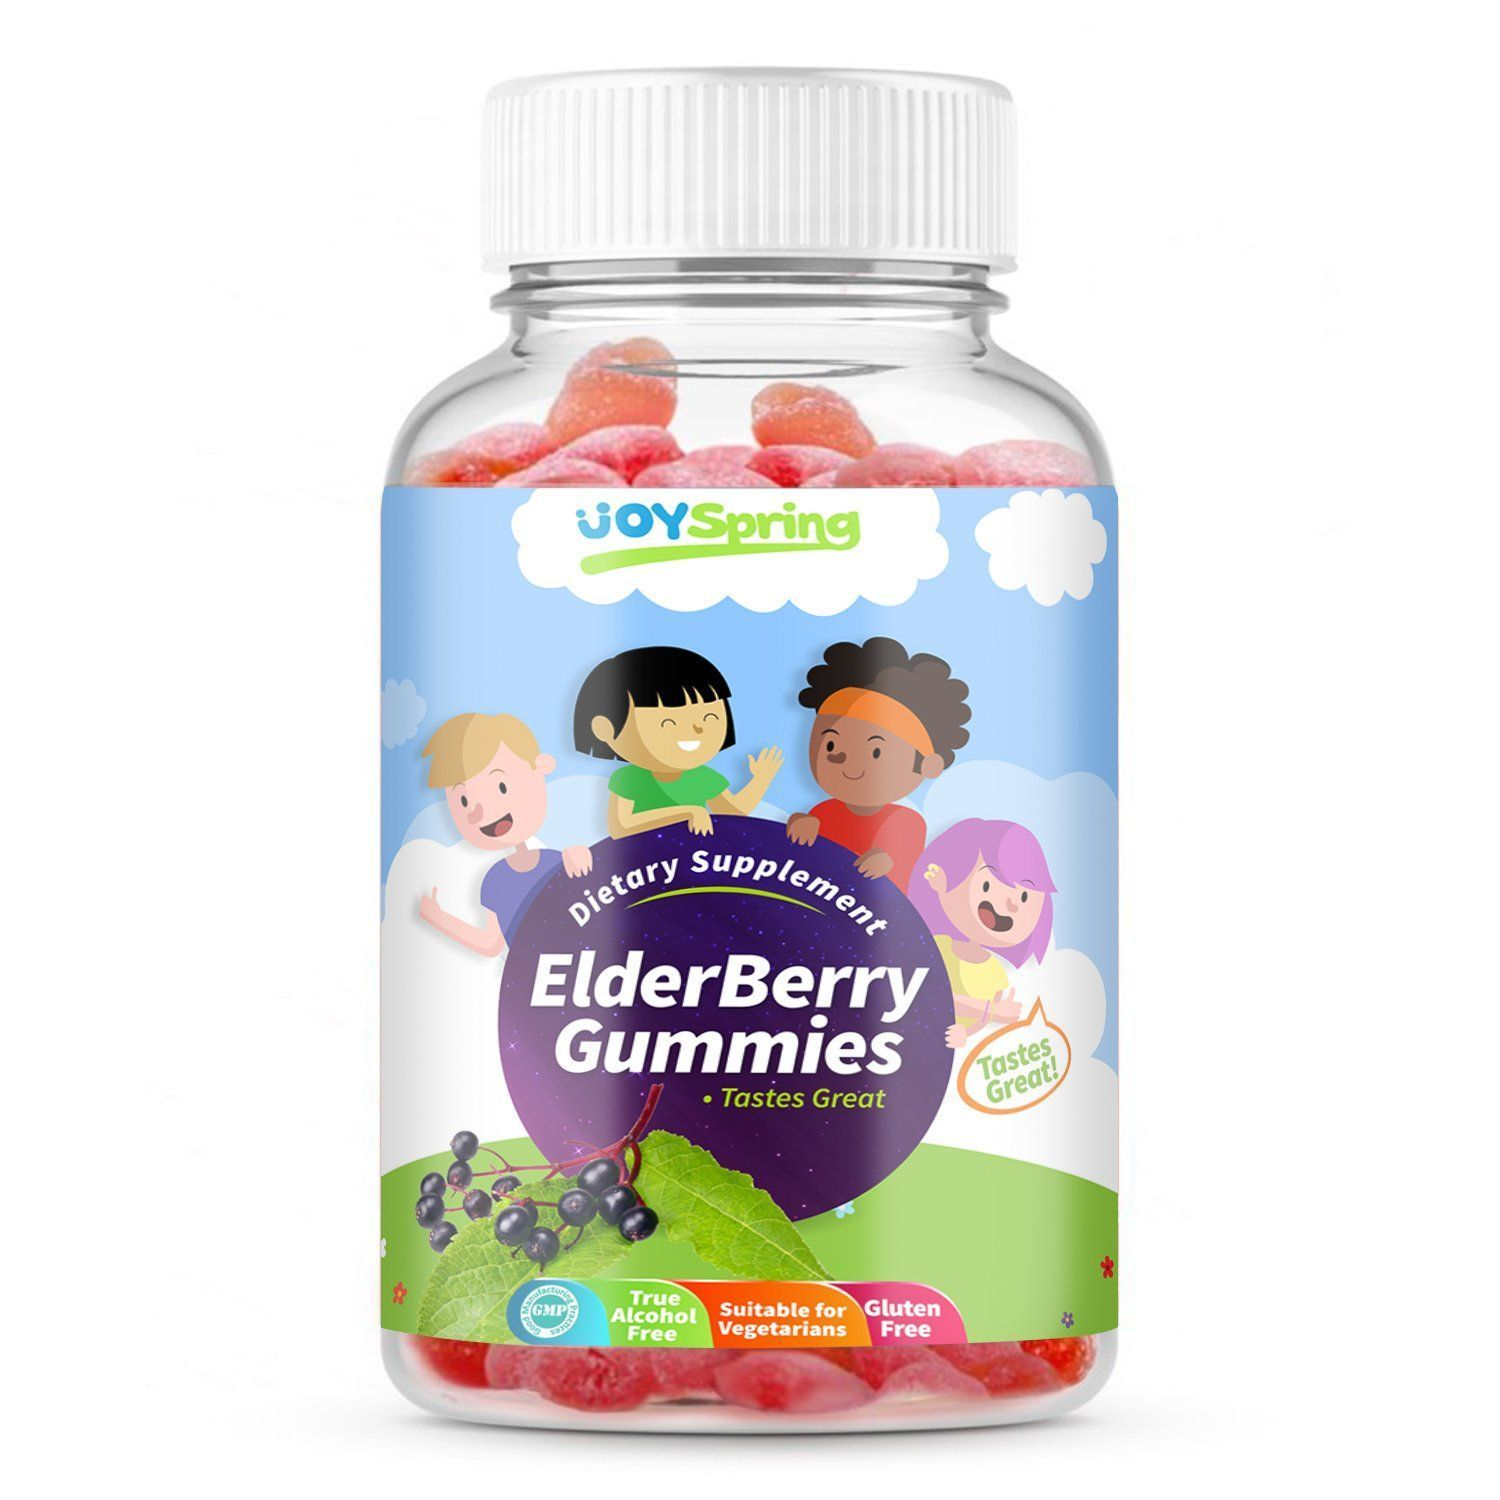 Elderberry Gummies Vitamins for kids, Elderberry gummies